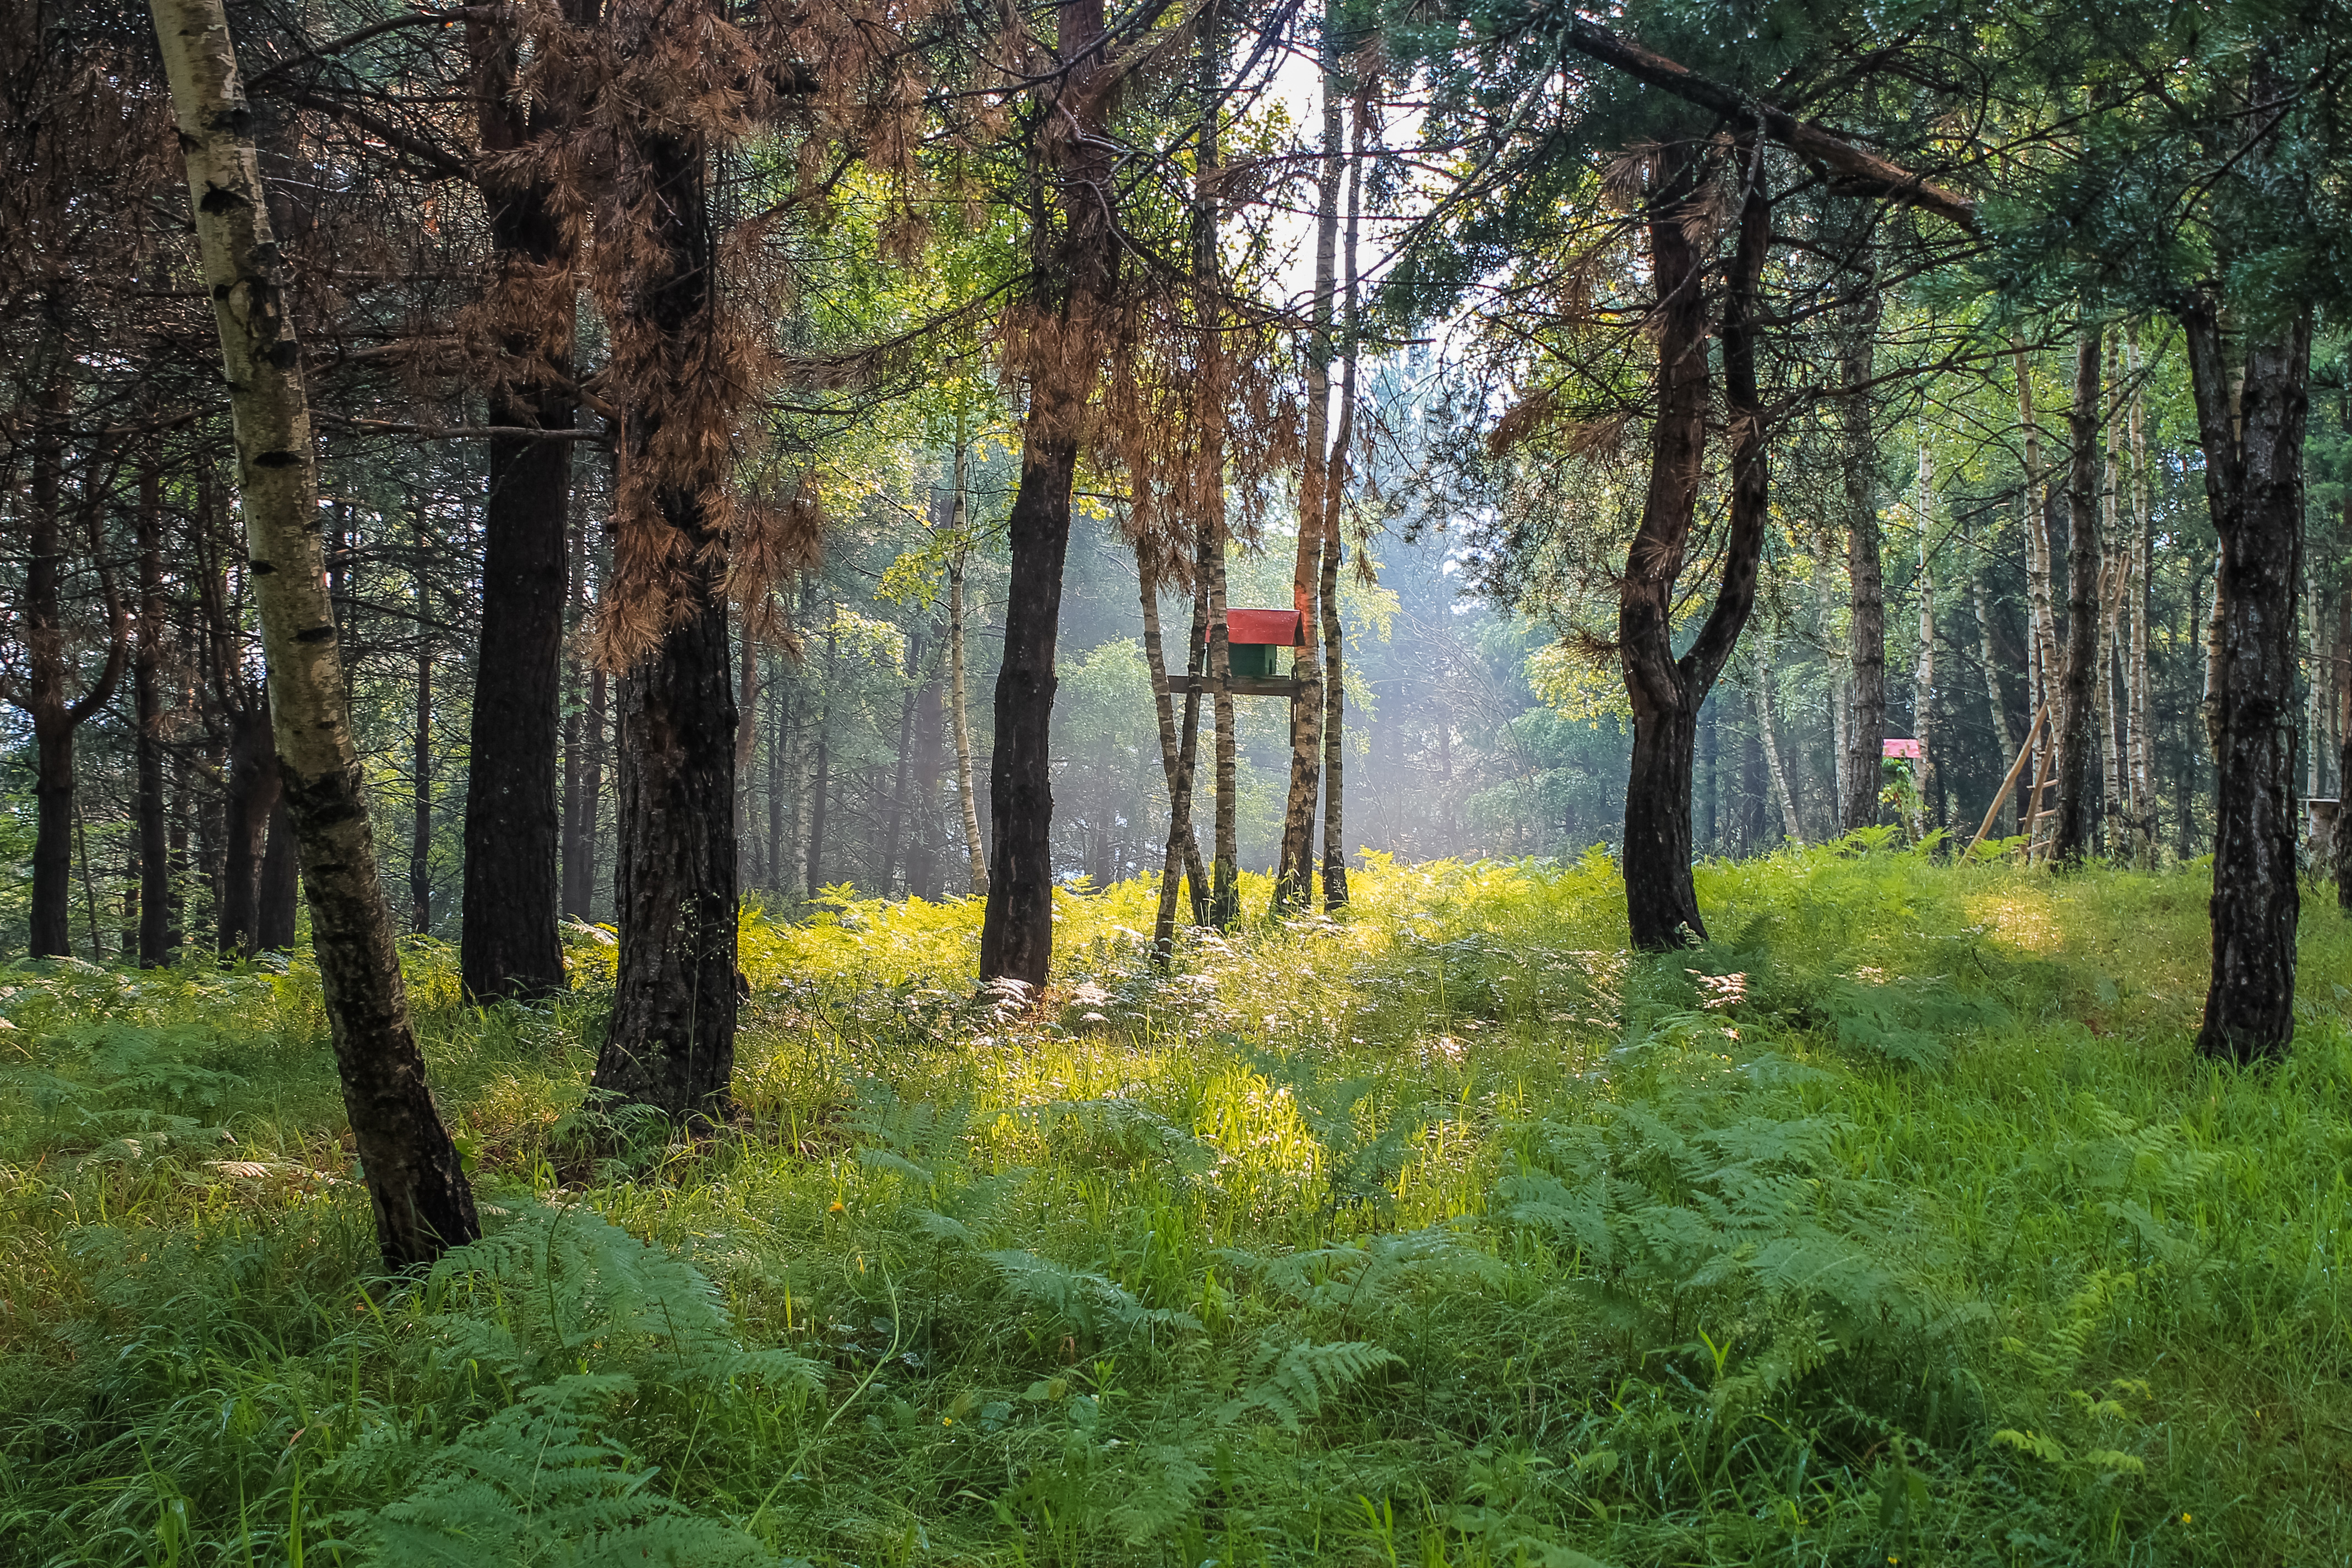 Red birdhouse in foggy, summer forest, plants, nature, scene, scenery, HQ Photo